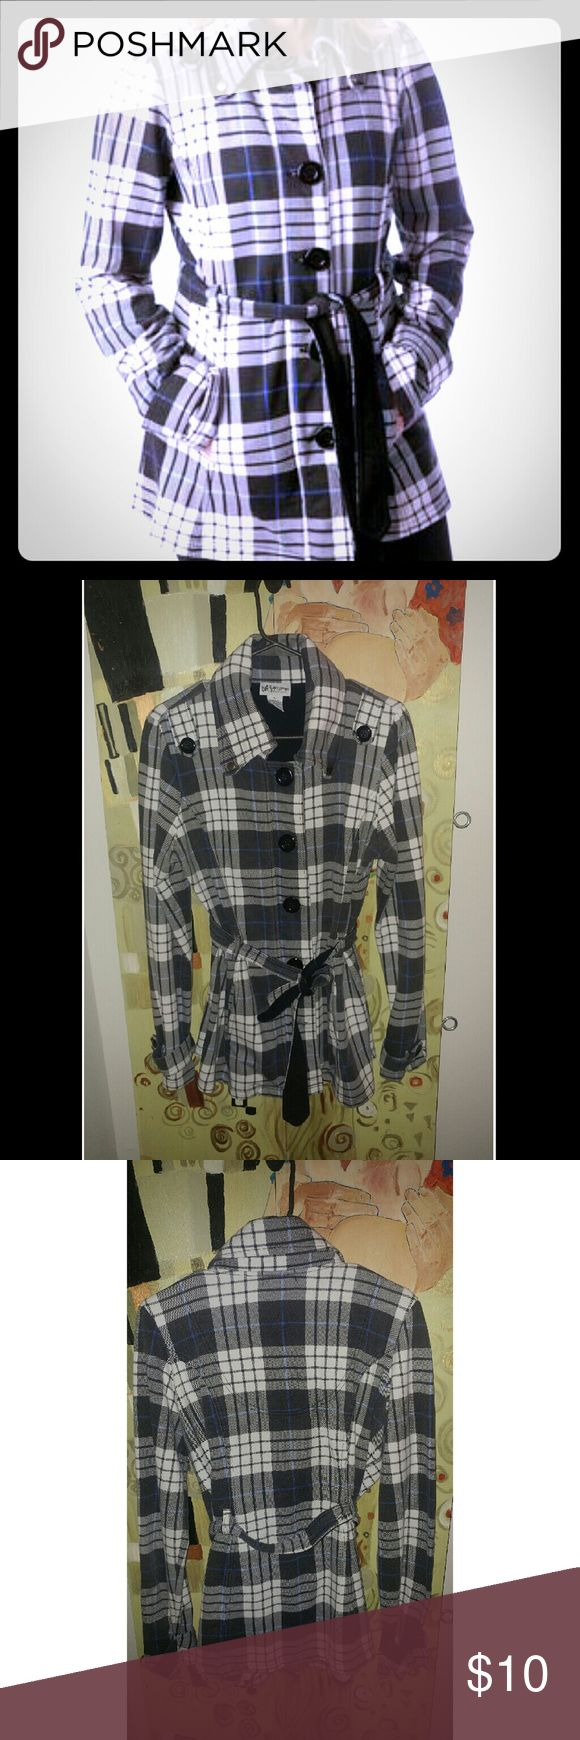 Plaid Lightweight Trench Coat In EUC cotton poly blend knee length trench coat. Blue black and white plaid with rouched shoulder detail. Metal decorative snaps make this a great alternative to a hoodie and gives an on the go outfit a dressed up look. Juniors size XL easily fits a size 14/16 plus Self Esteem Jackets & Coats Trench Coats